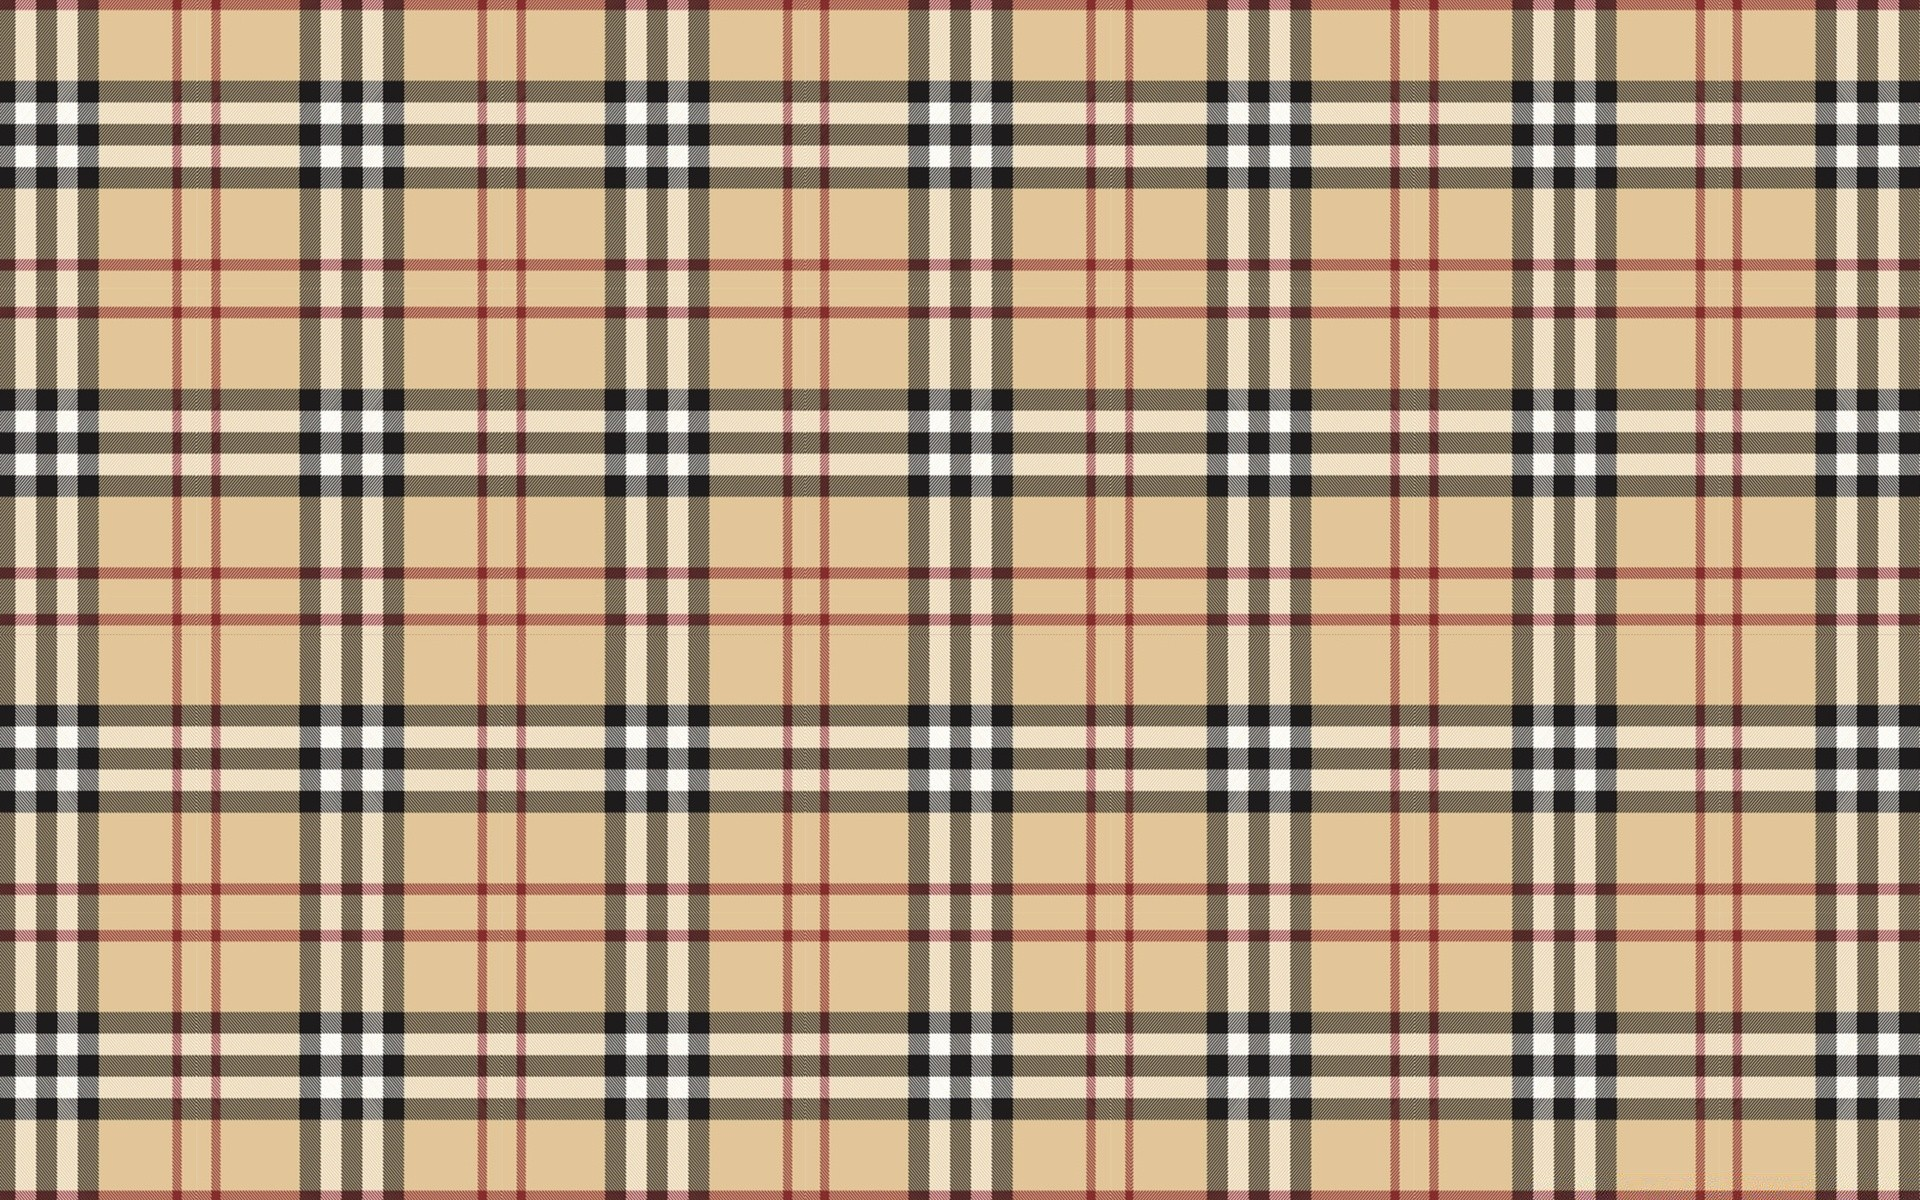 burberry android wallpapers